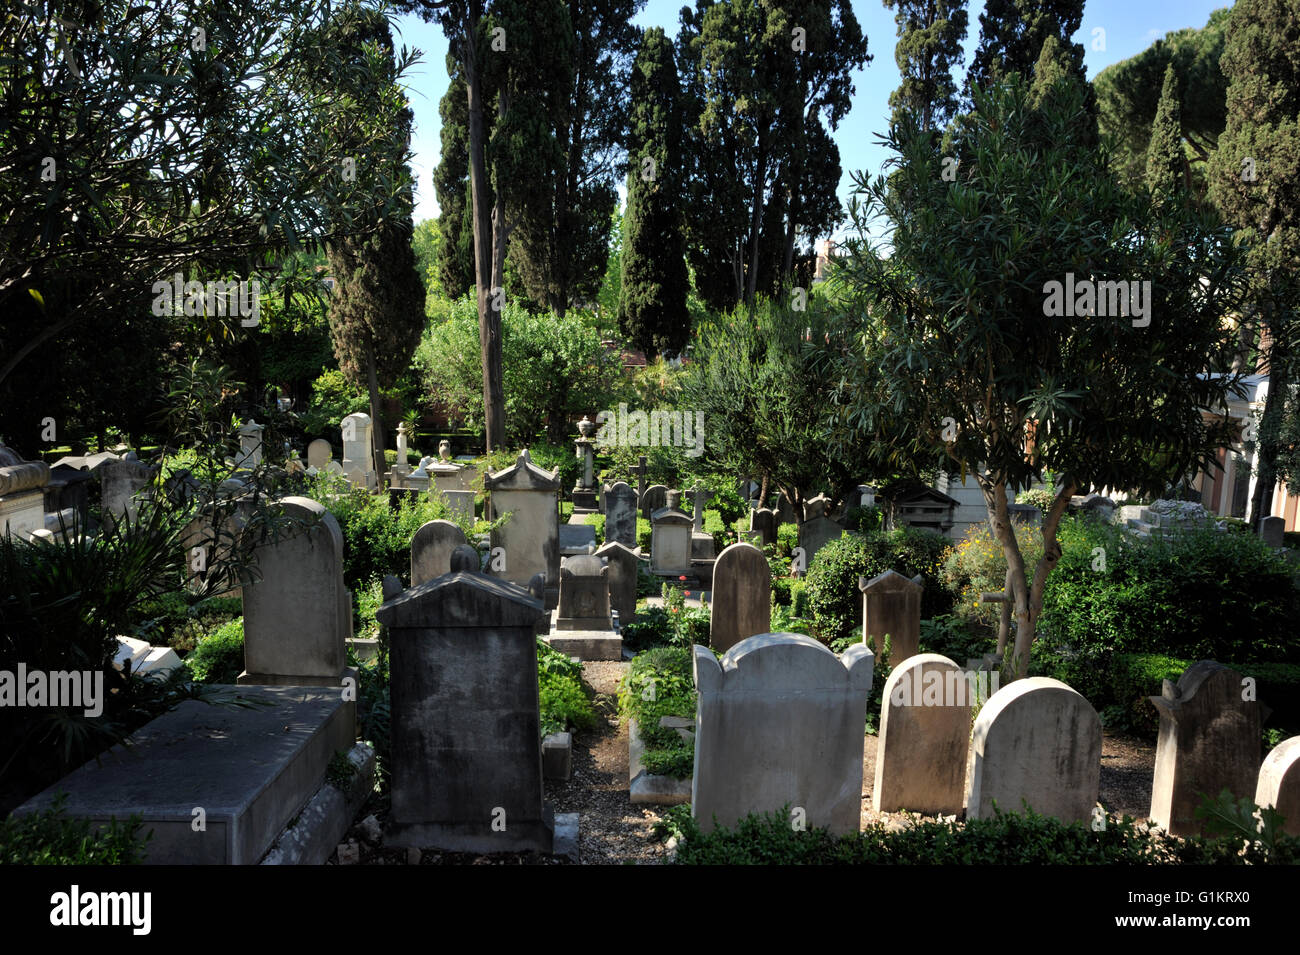 italy, rome, protestant cemetery, graveyards - Stock Image